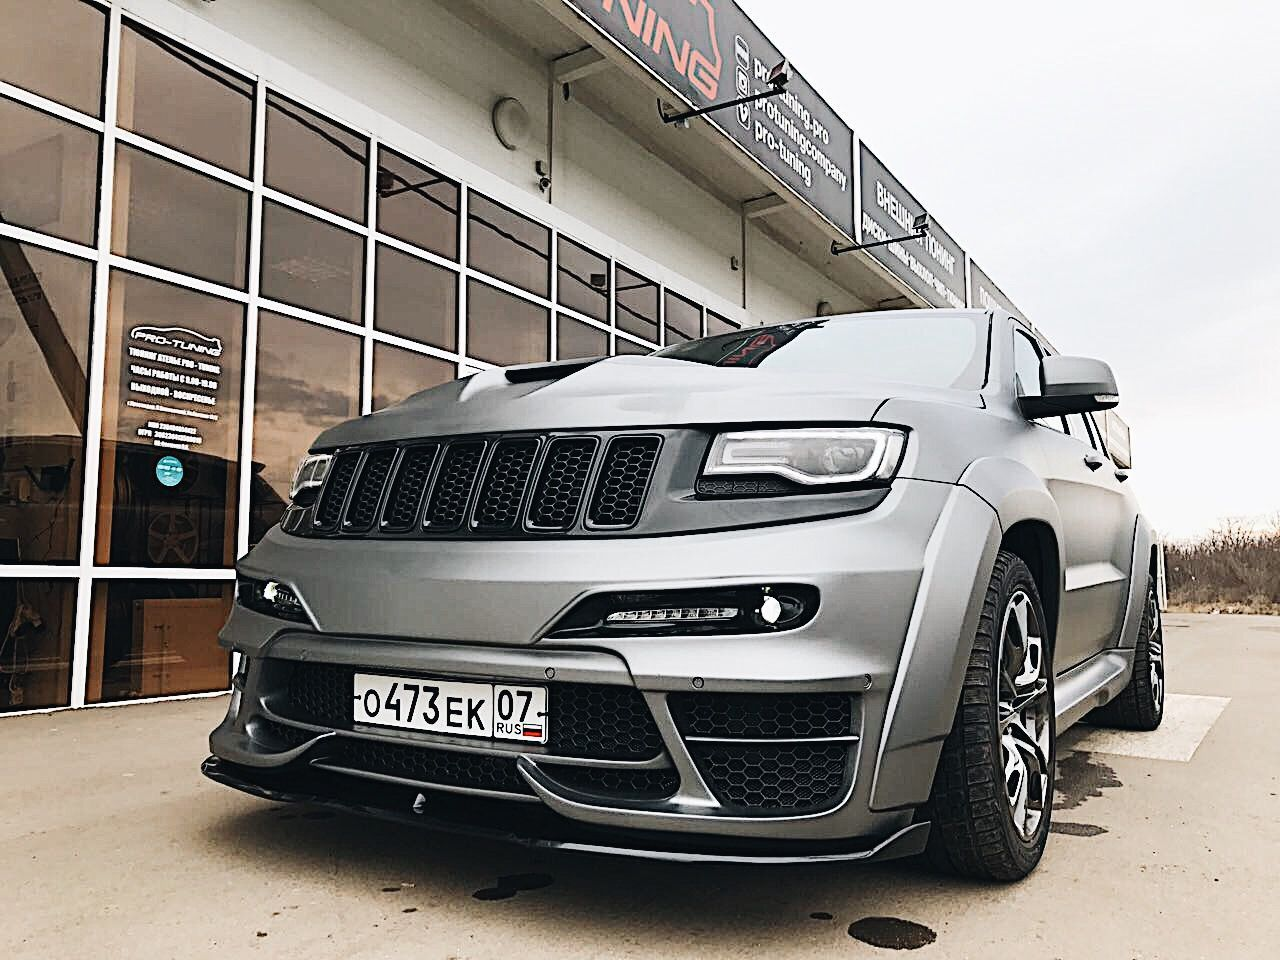 Tuning Body Kits Forged Wheels Instagram Hello Africa Jeep Gc Wk2 With Our Body Kit Tyrannos V1 We Have 3 Versio Jeep Srt8 Jeep Grand Cherokee Srt Srt Jeep